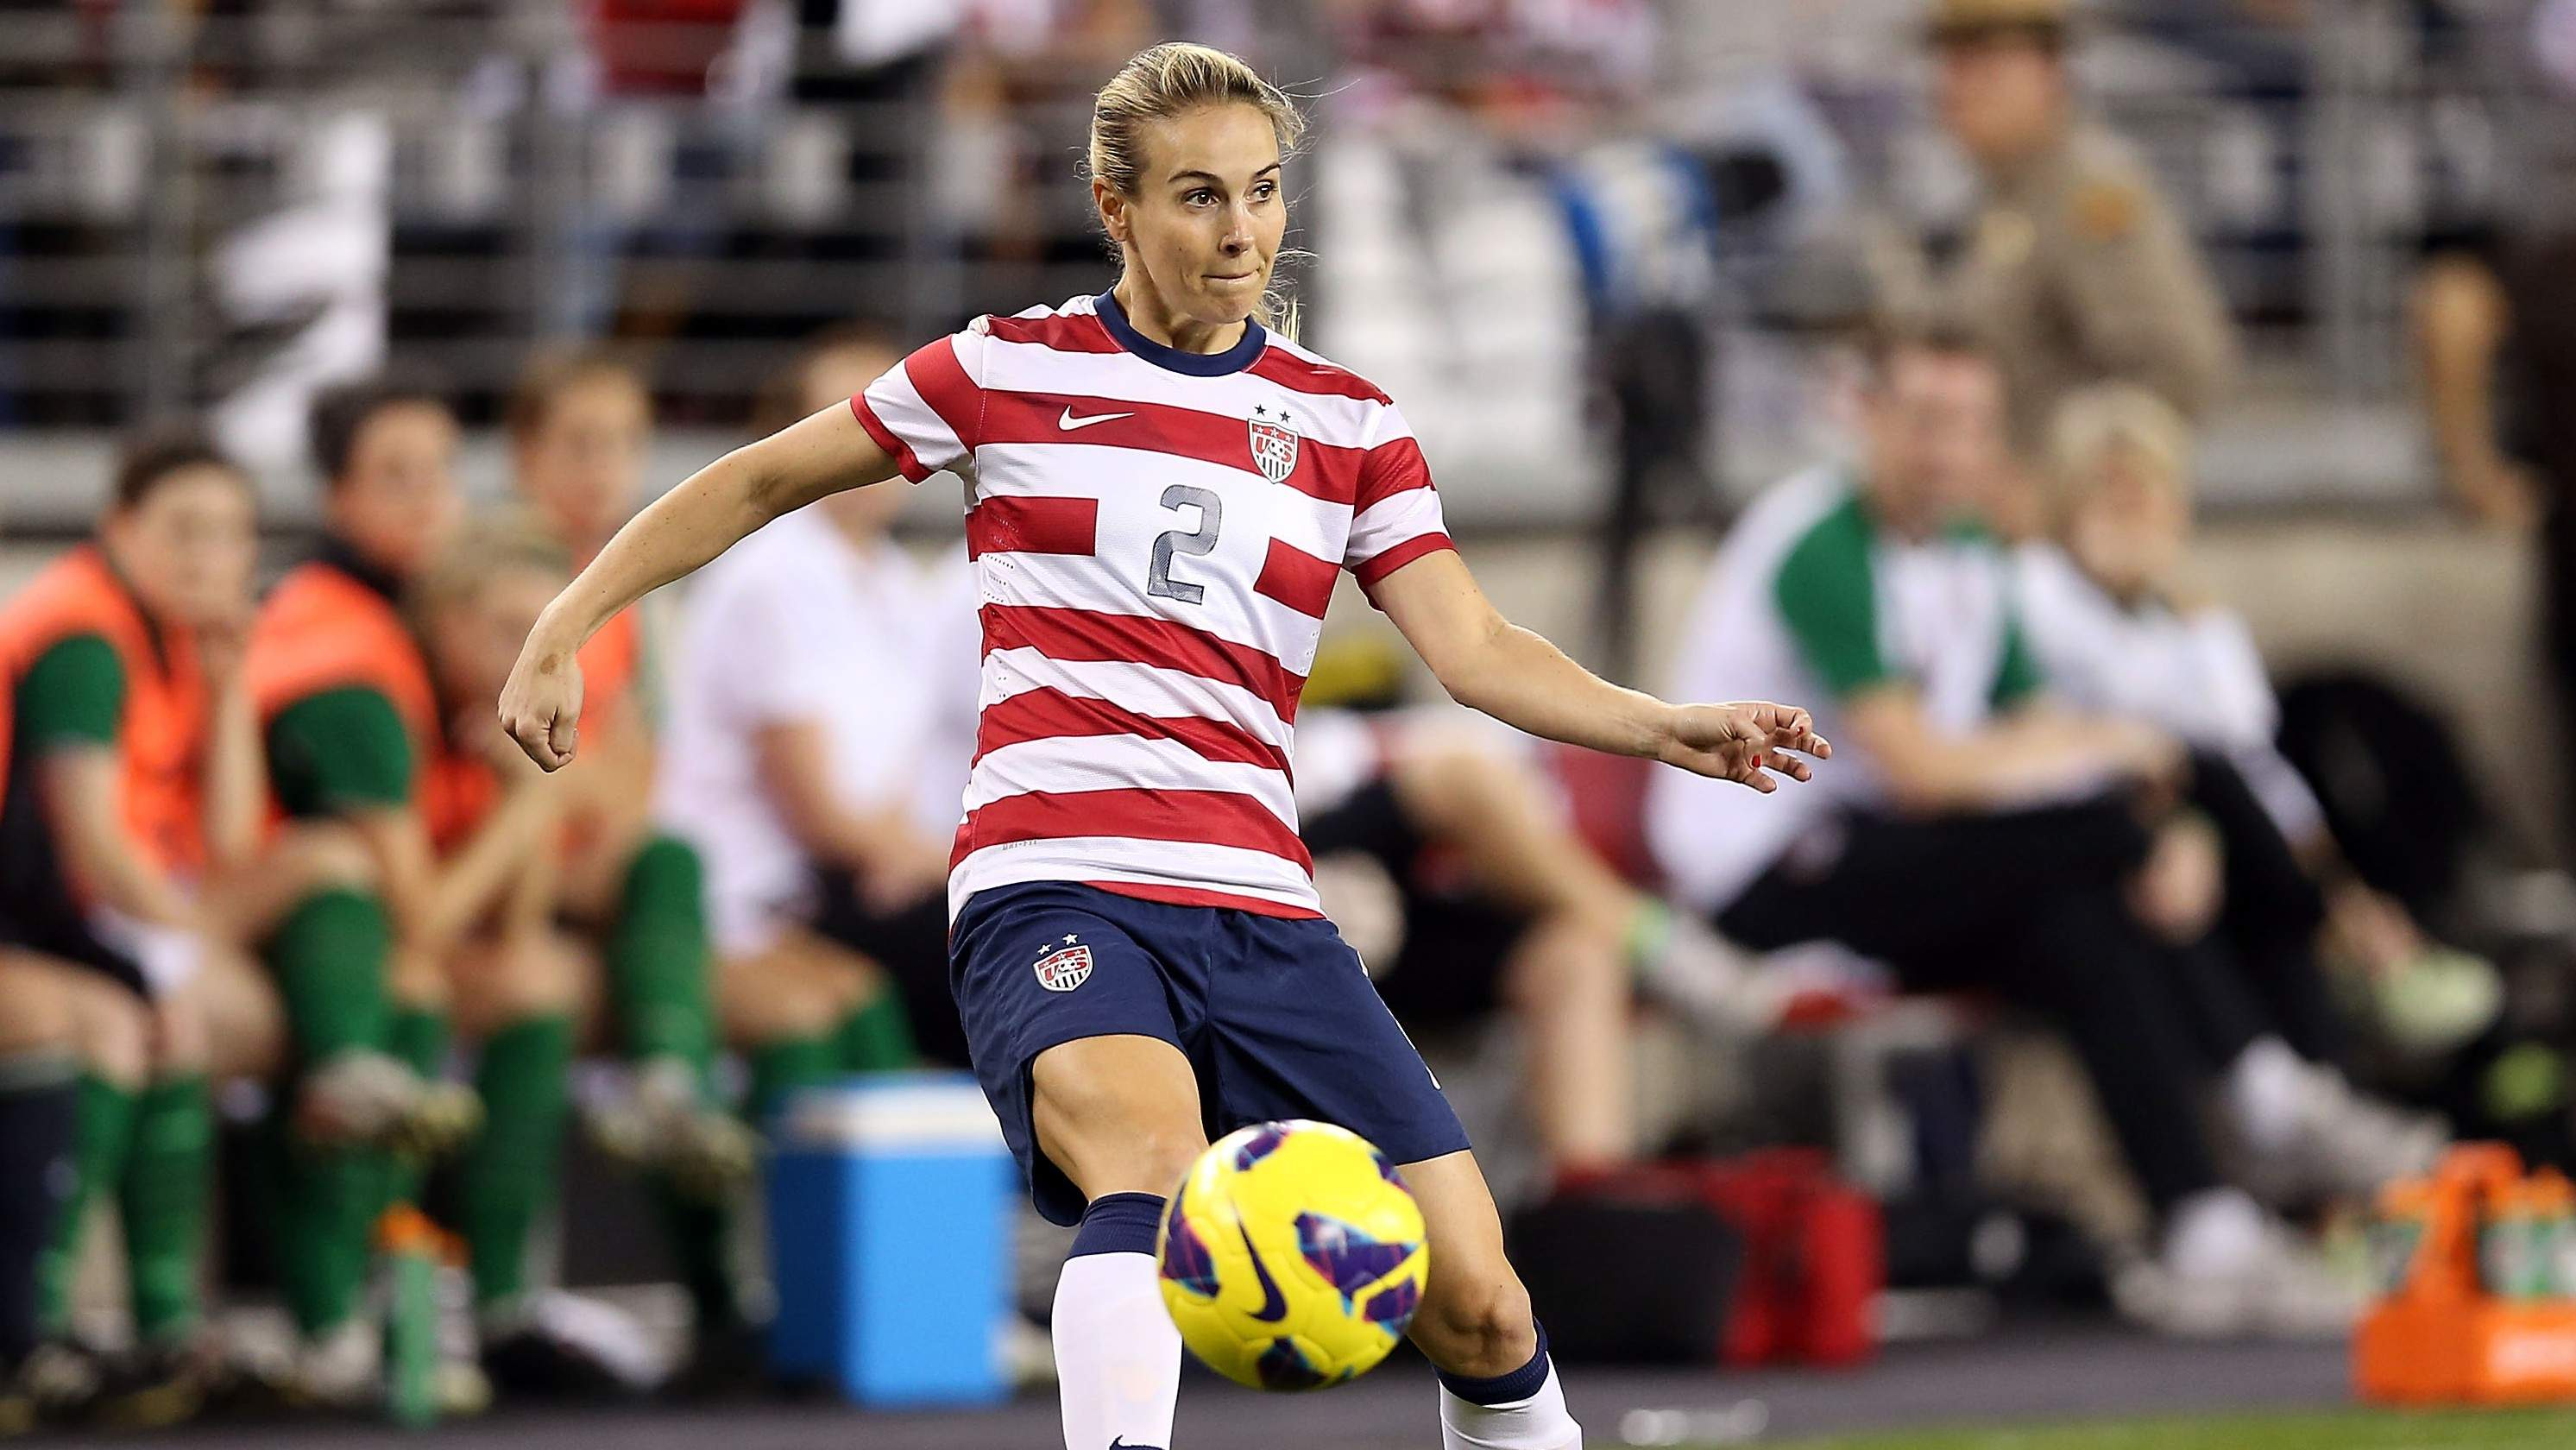 Heather Mitts awesome pictures